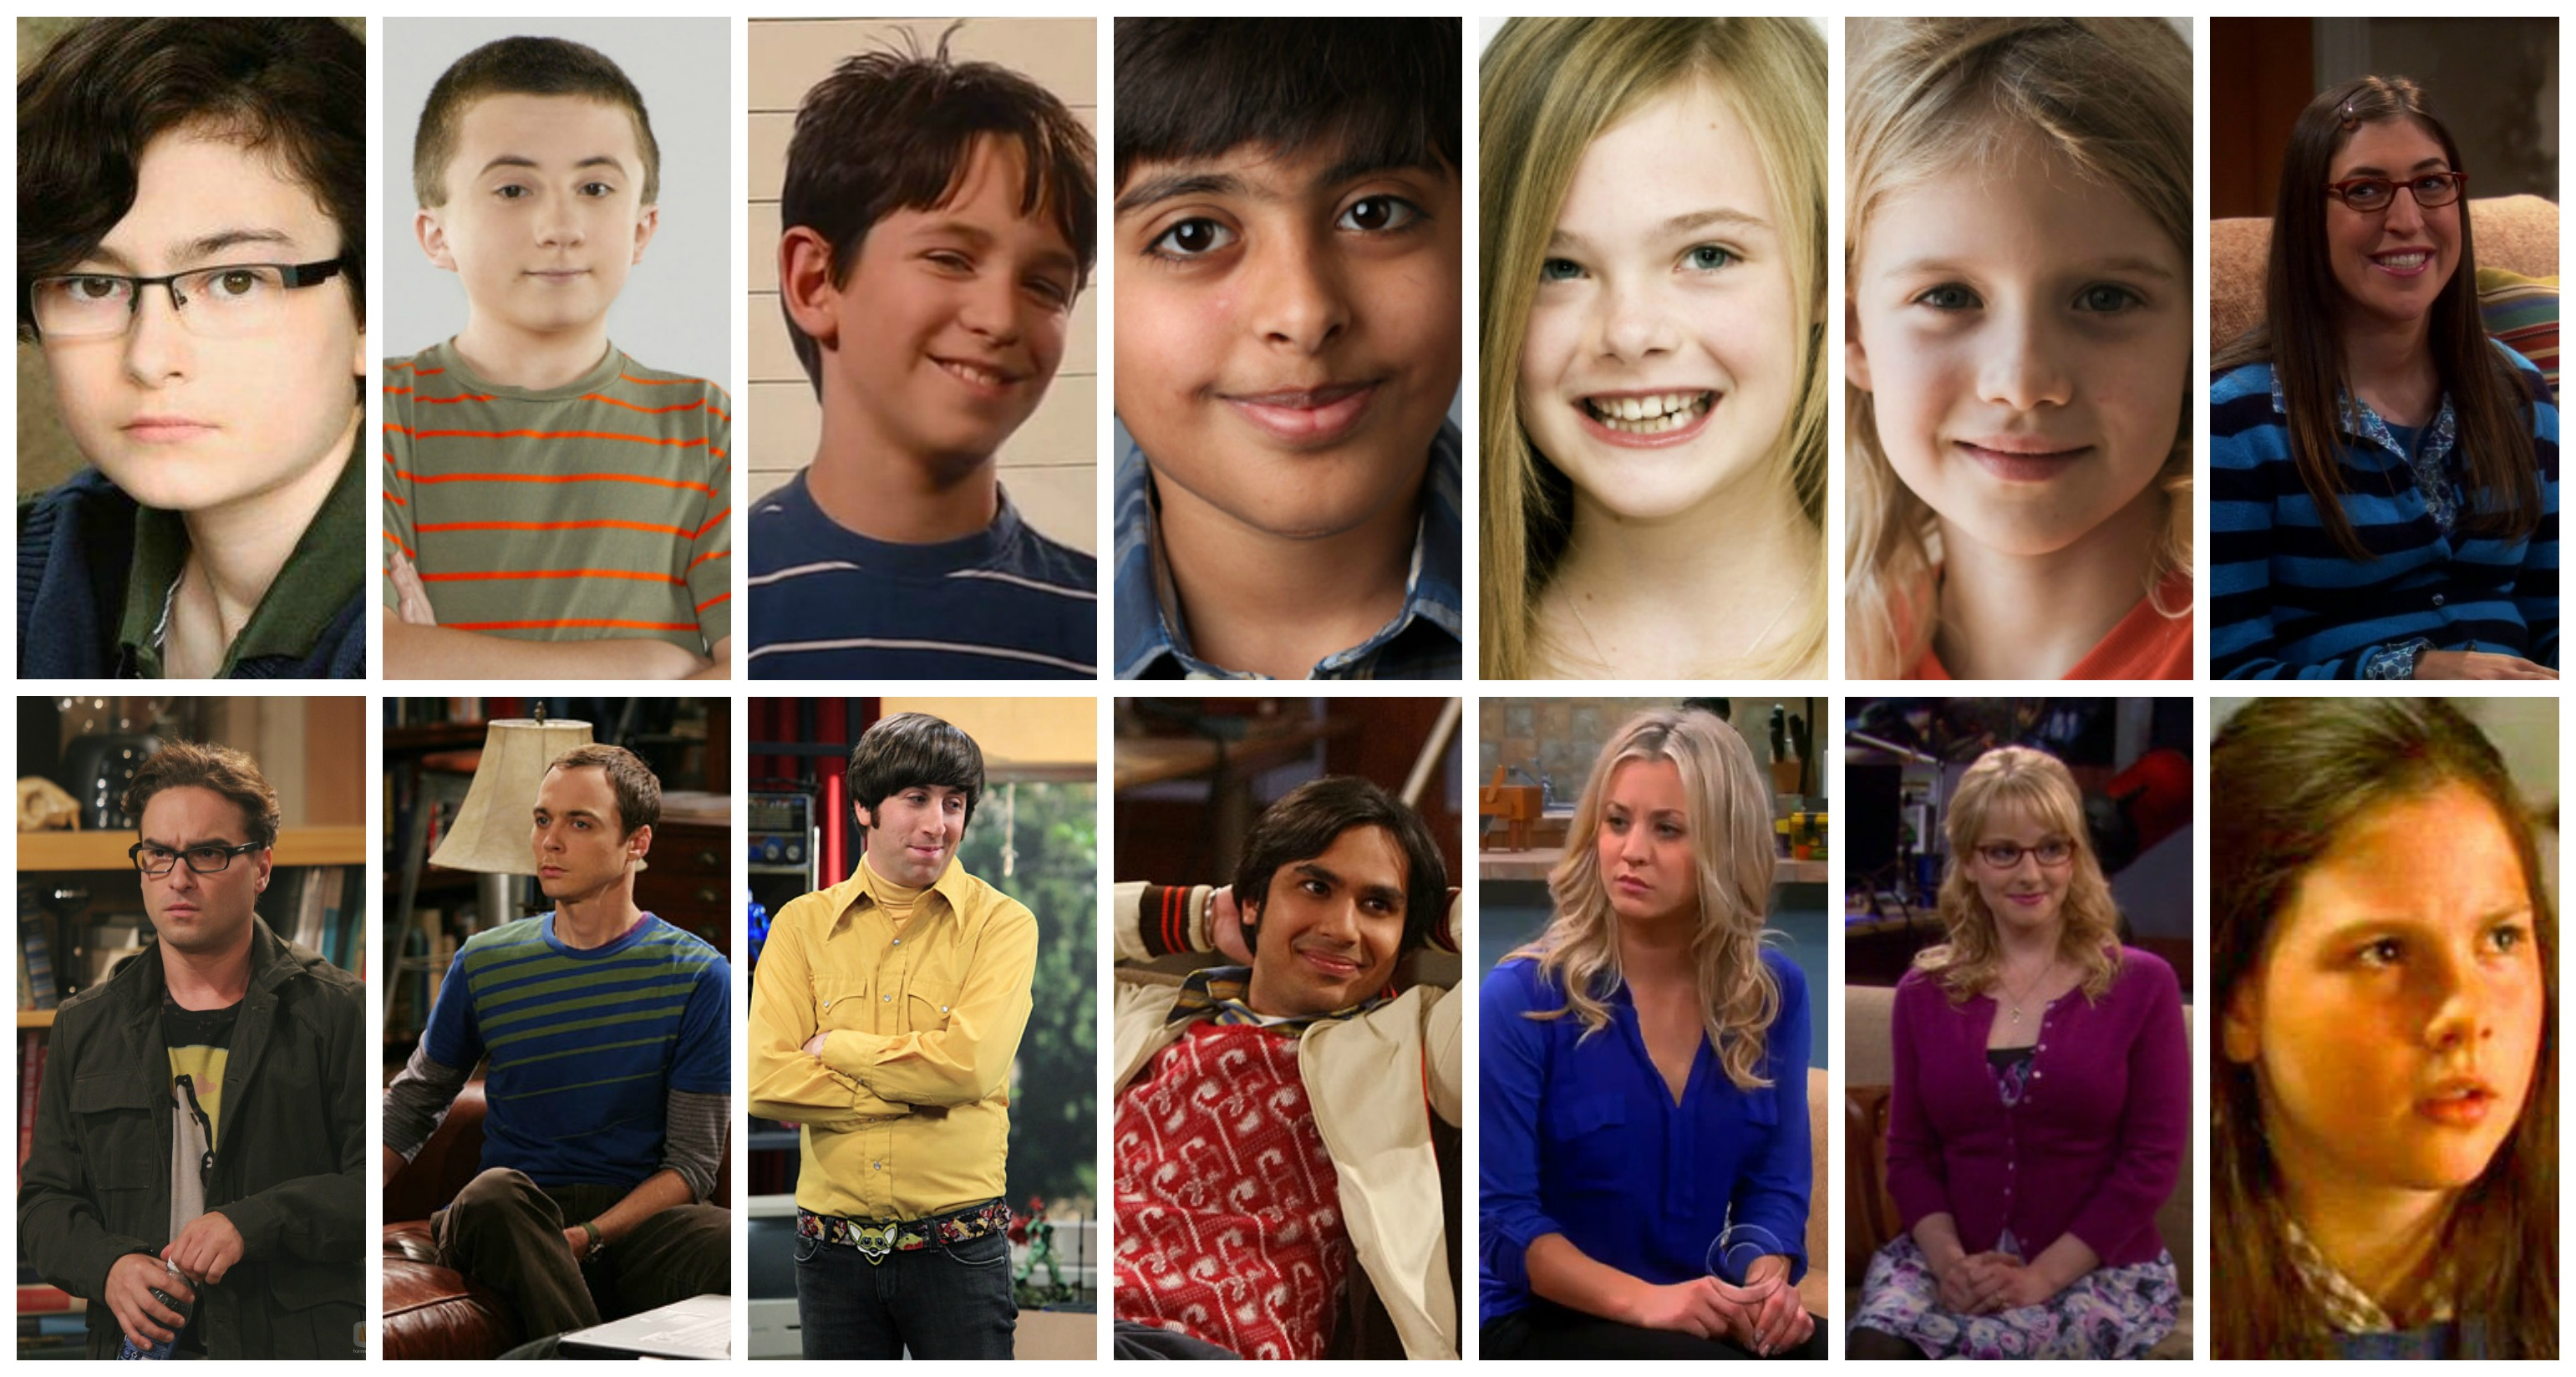 the_big_bang_theory_now_and_then.jpg